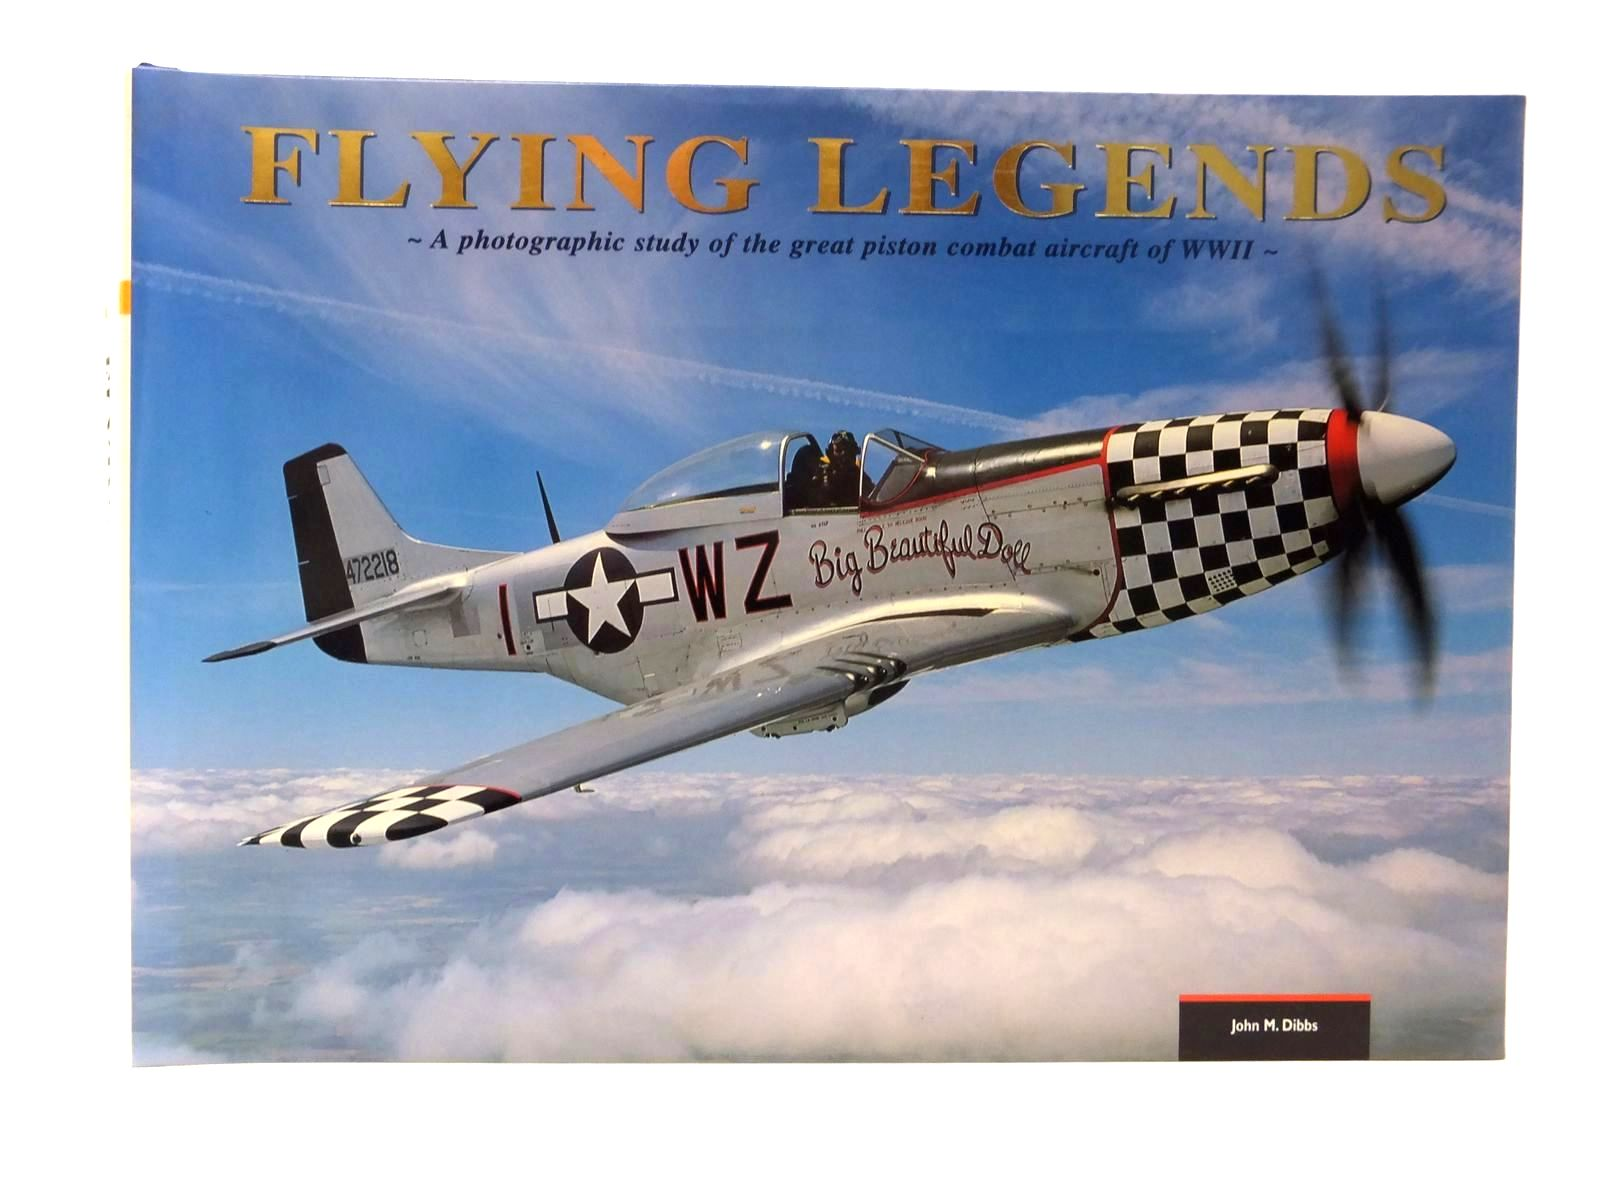 Photo of FLYING LEGENDS - A PHOTOGRAPHIC STUDY OF THE GREAT PISTON COMBAT AIRCRAFT OF WWII written by Holmes, Tony illustrated by Dibbs, John M. published by The Plane Picture Co. Publishing (STOCK CODE: 1609518)  for sale by Stella & Rose's Books